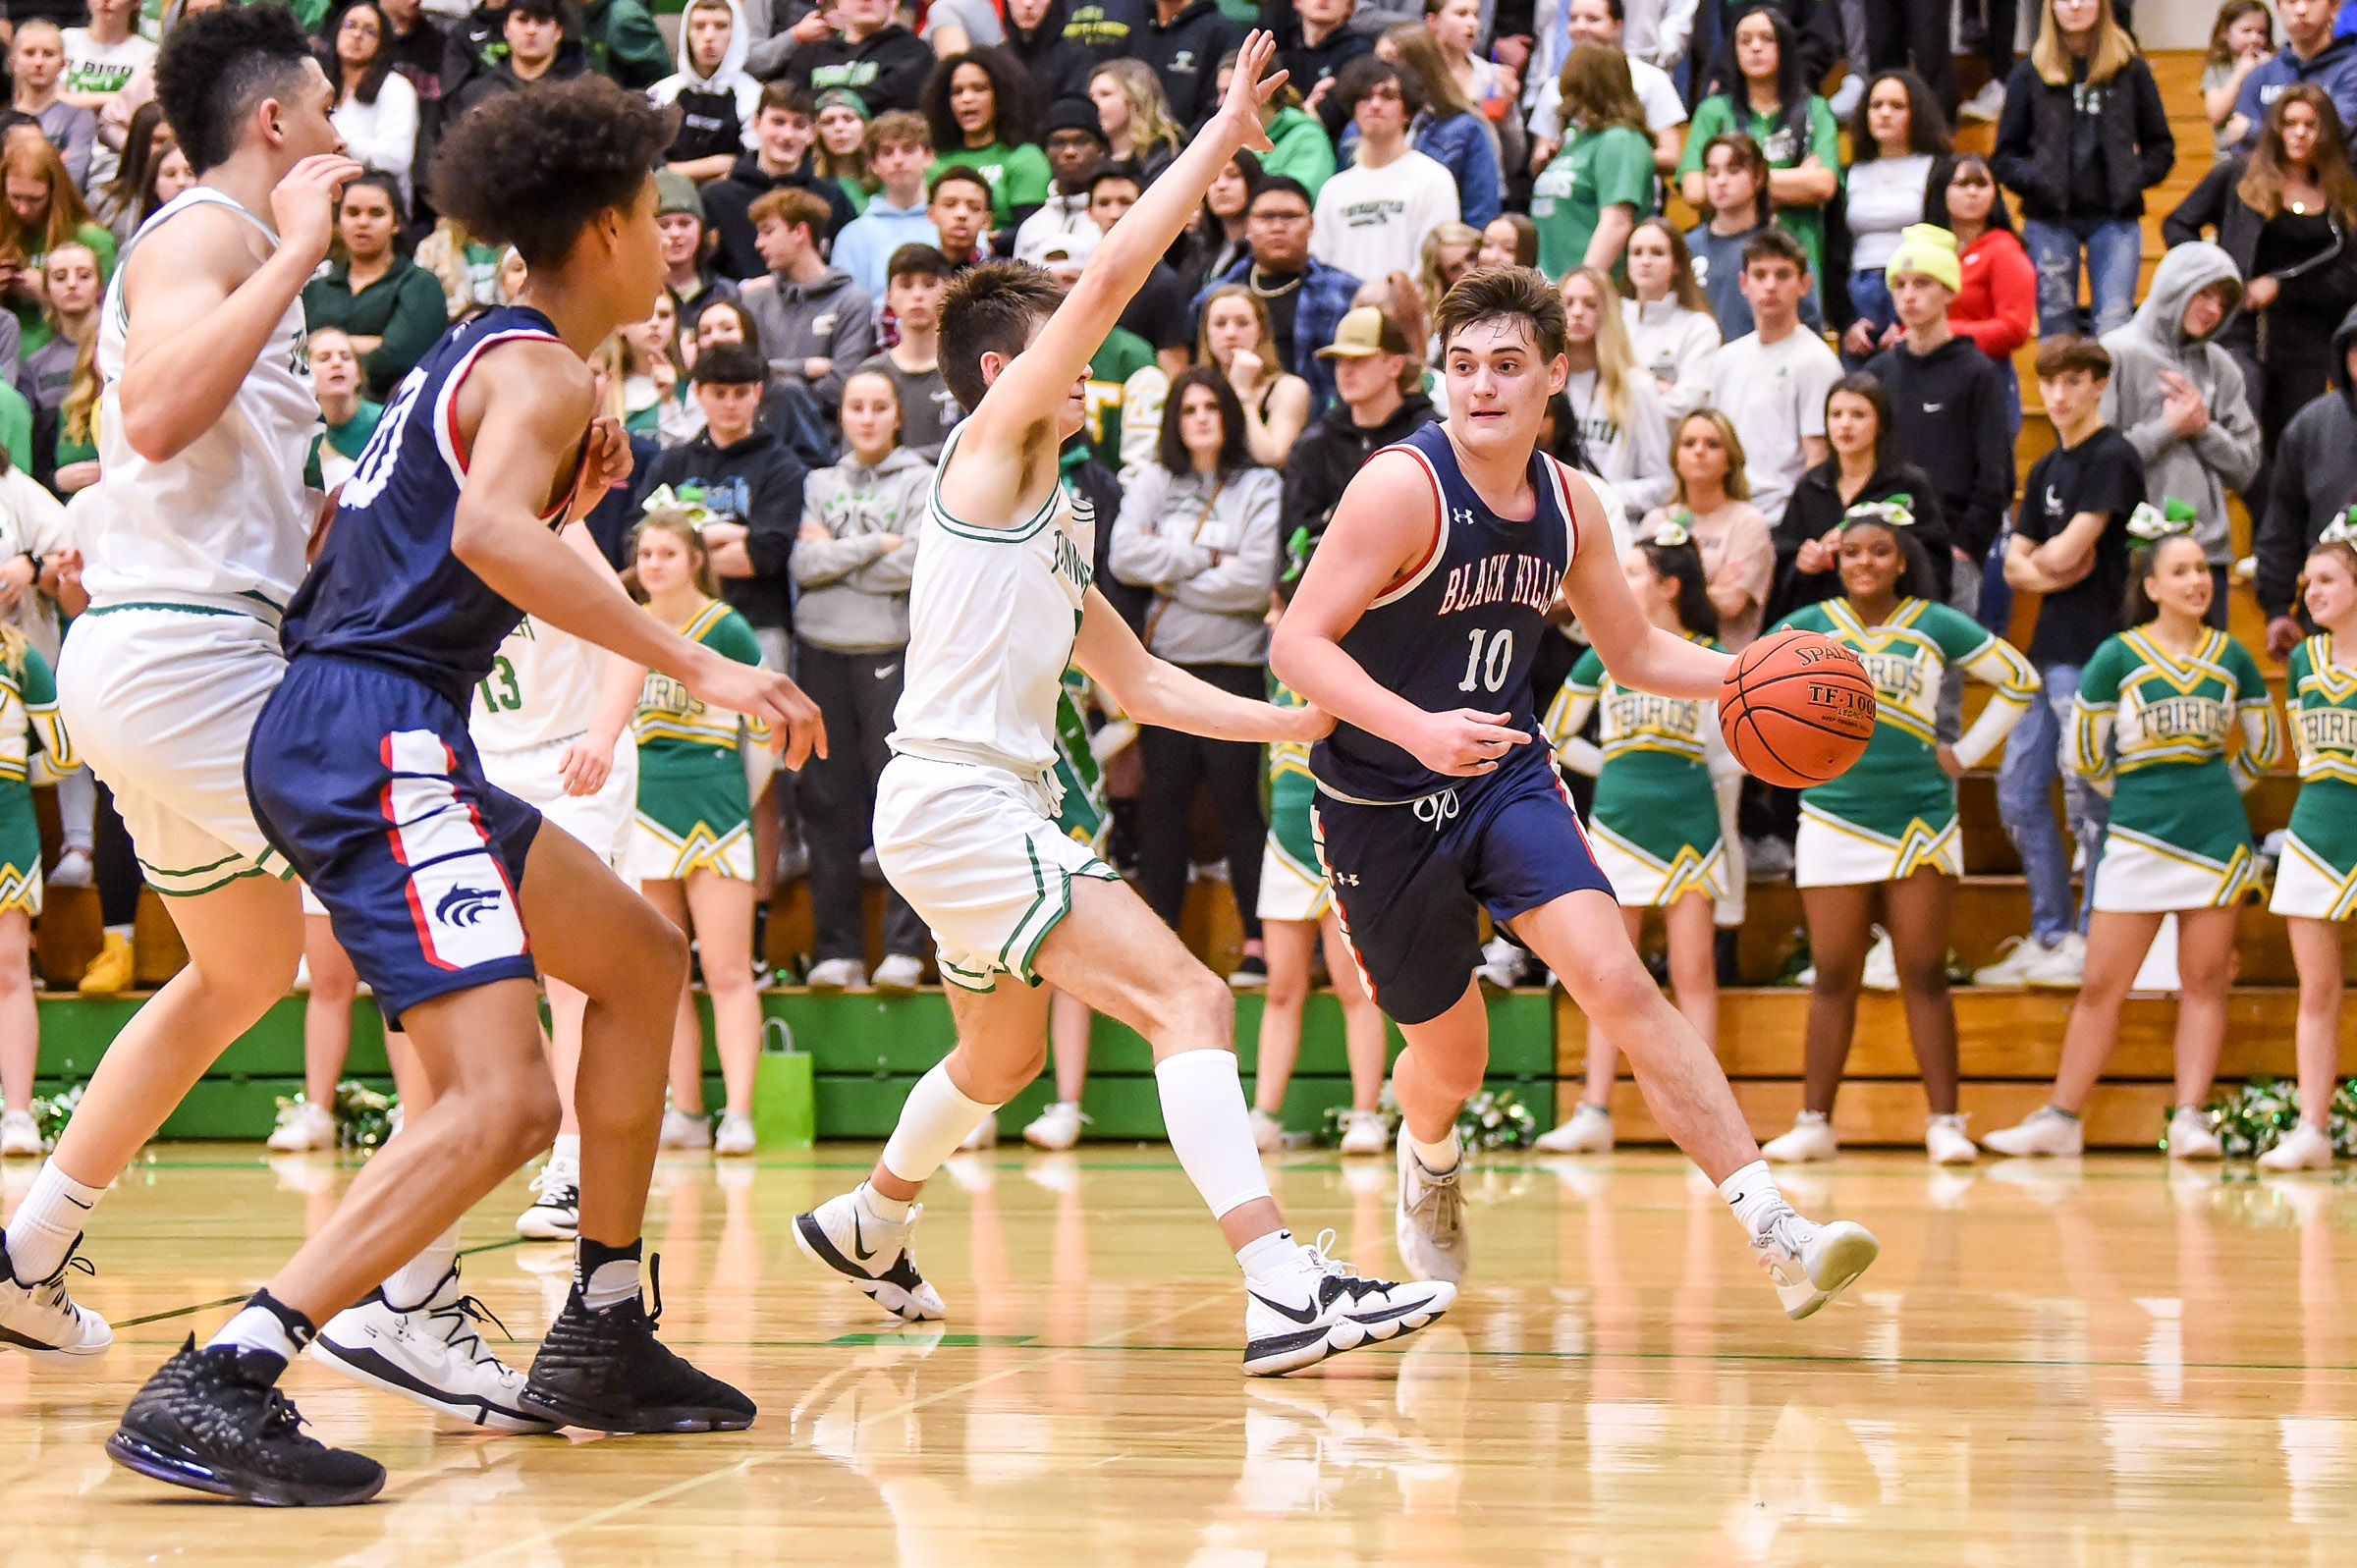 Tumwater Prevails Against Black Hills as Area Teams Prepare for Districts - ThurstonTalk